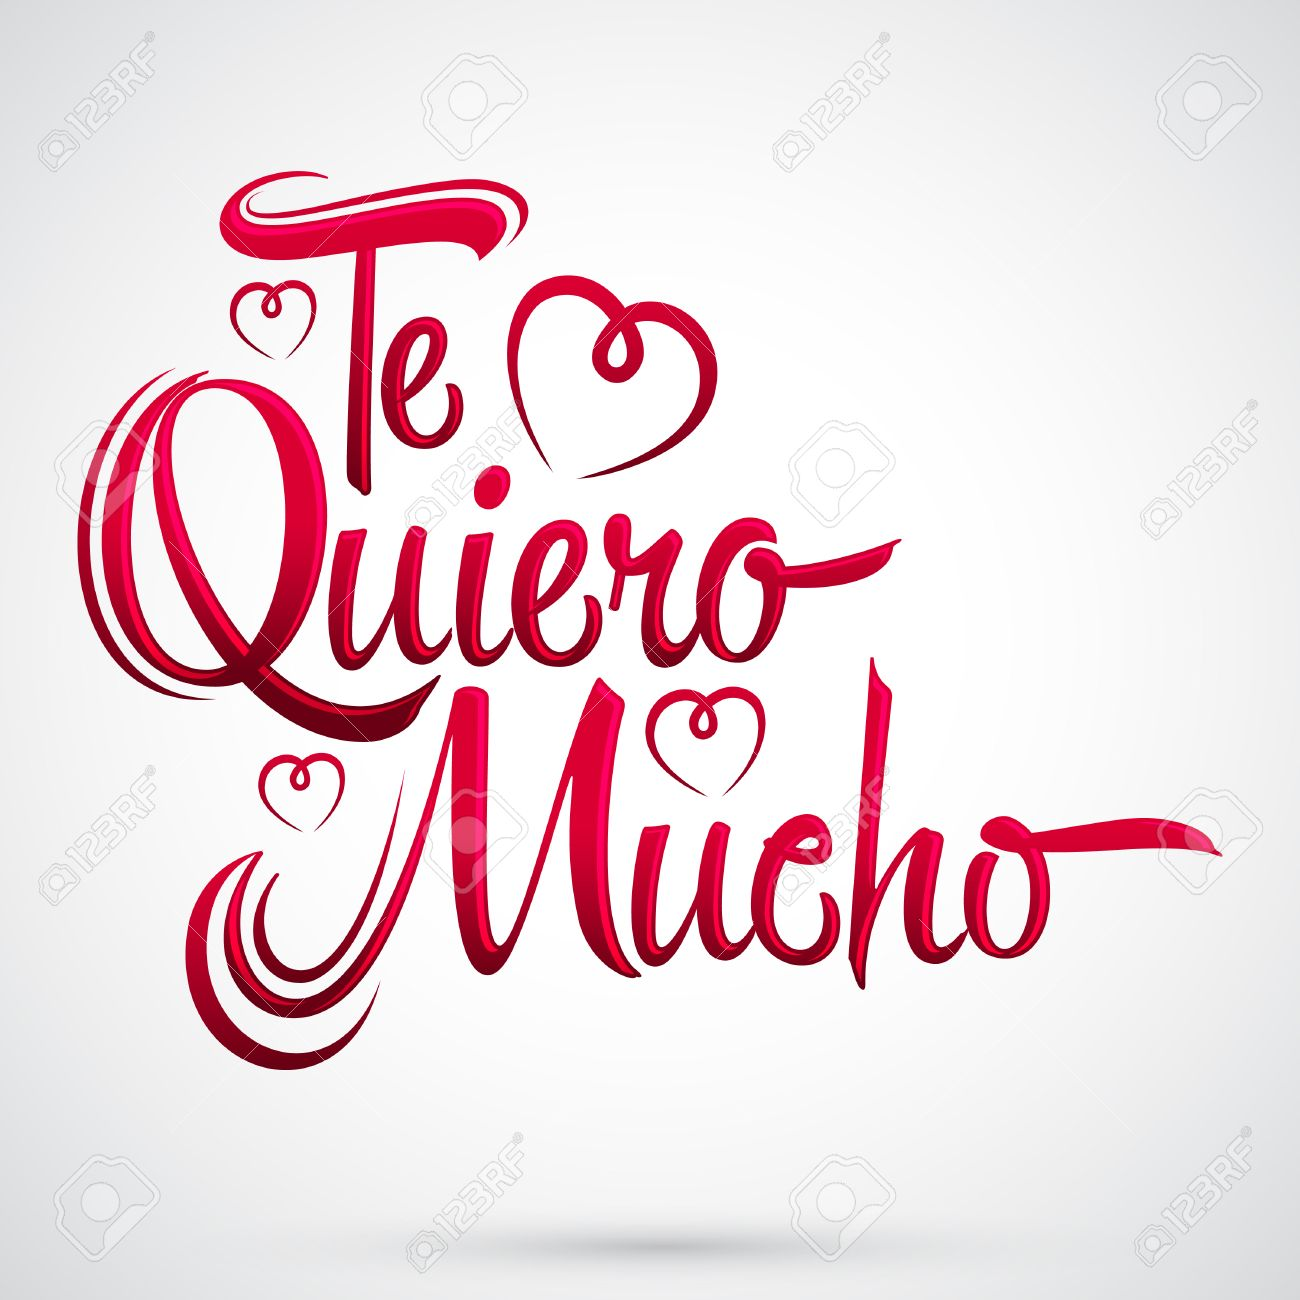 Te Quiero Mucho - I love you so much spanish text, vector lettering design - 52505762